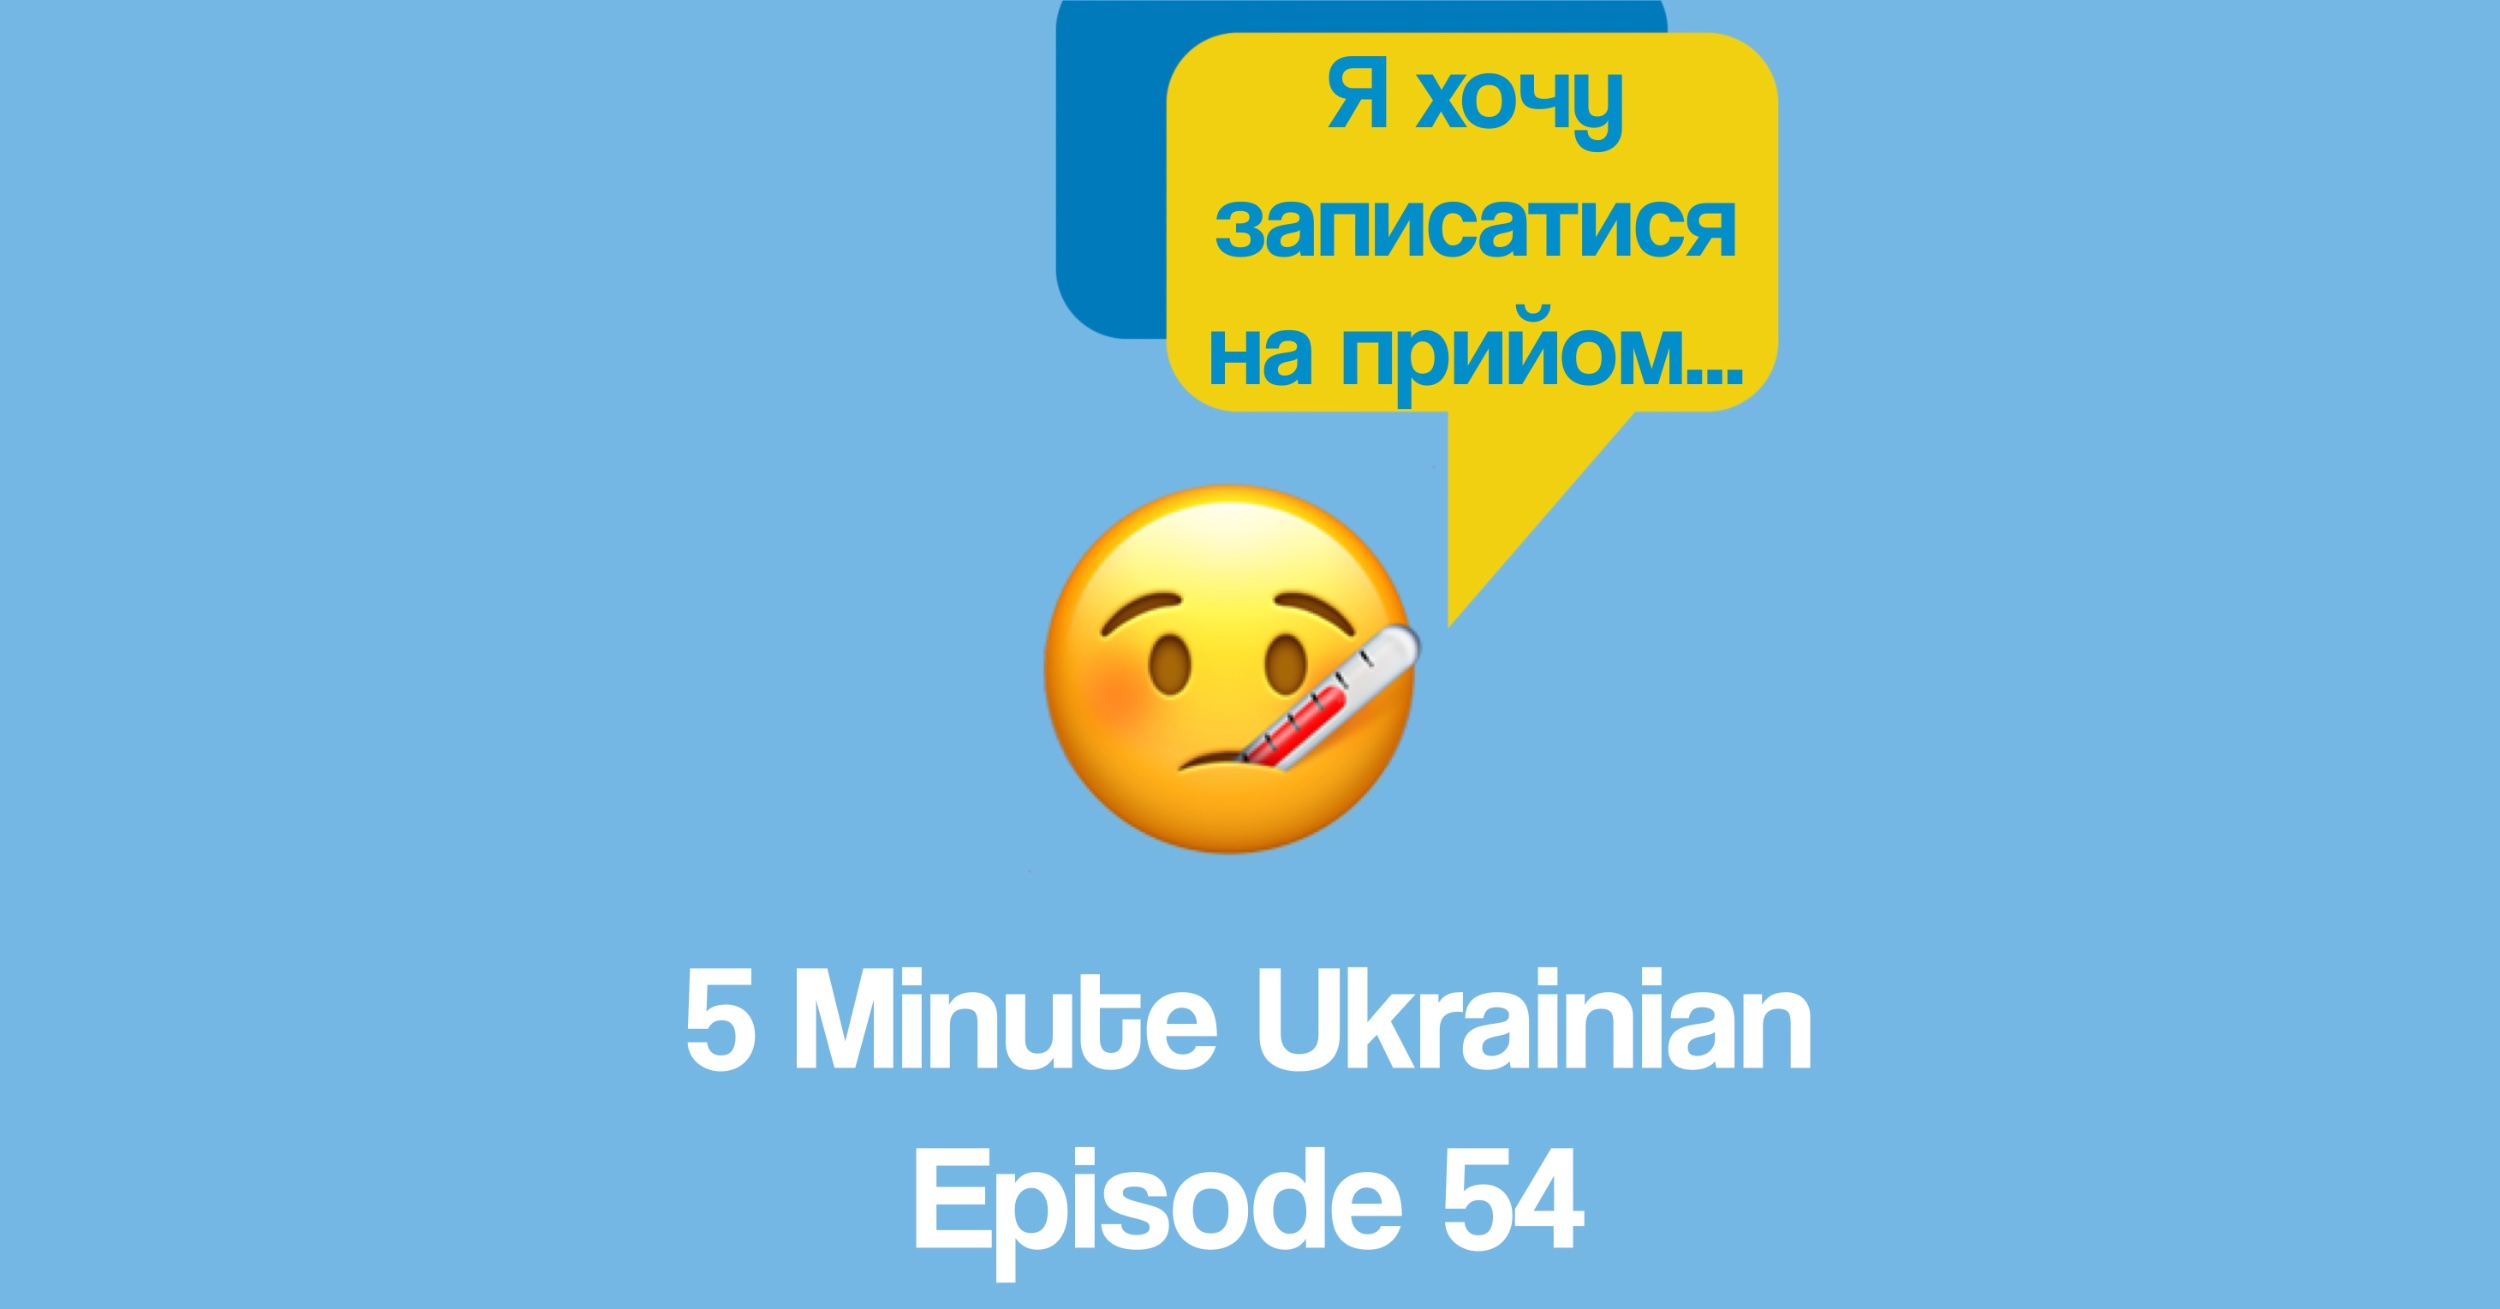 make an appointment with a doctor in Ukrainian